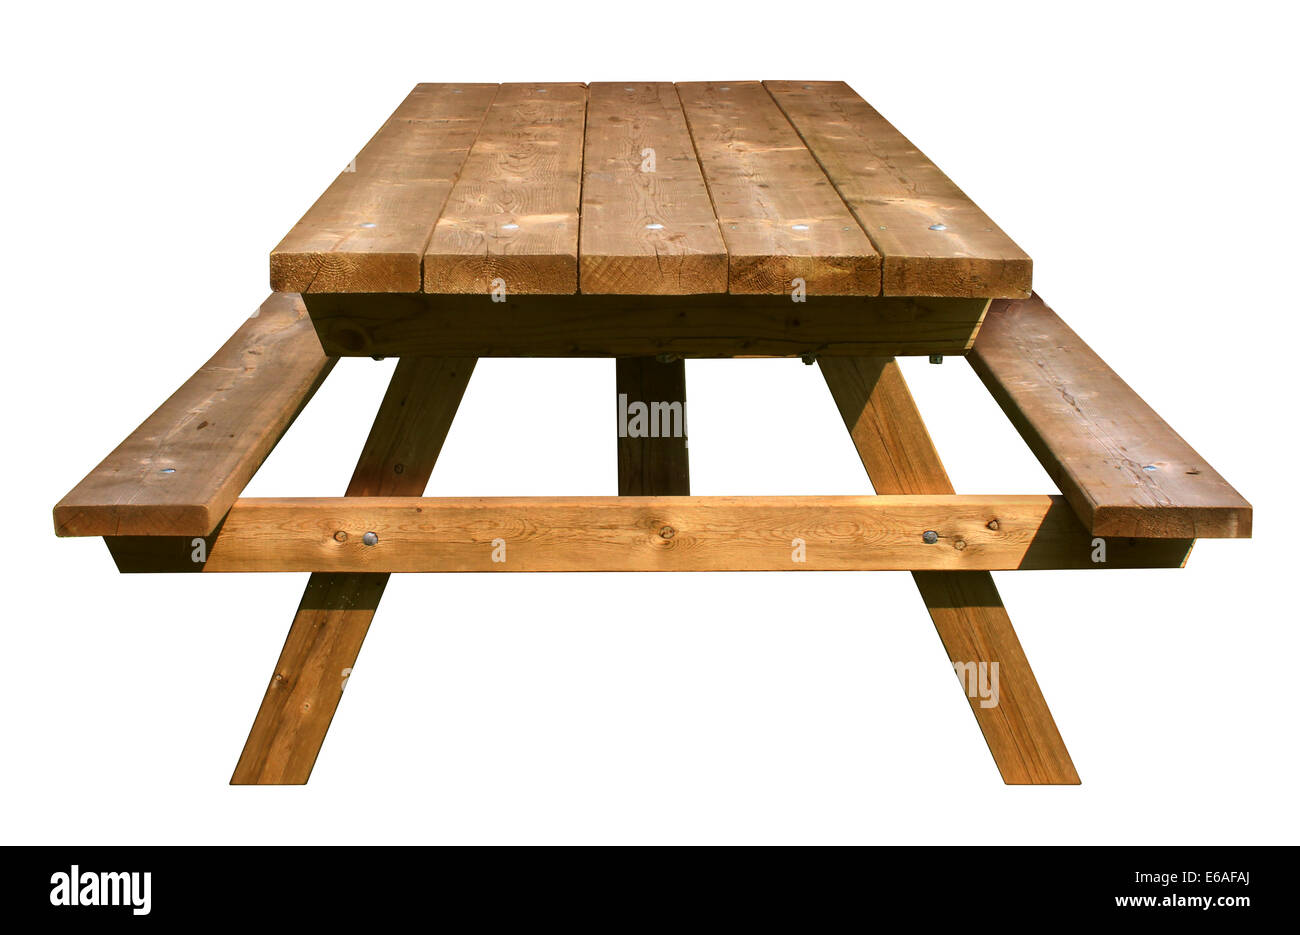 Picnic table front view made of weathered wood on an isolated picnic table front view made of weathered wood on an isolated white background as a symbol biocorpaavc